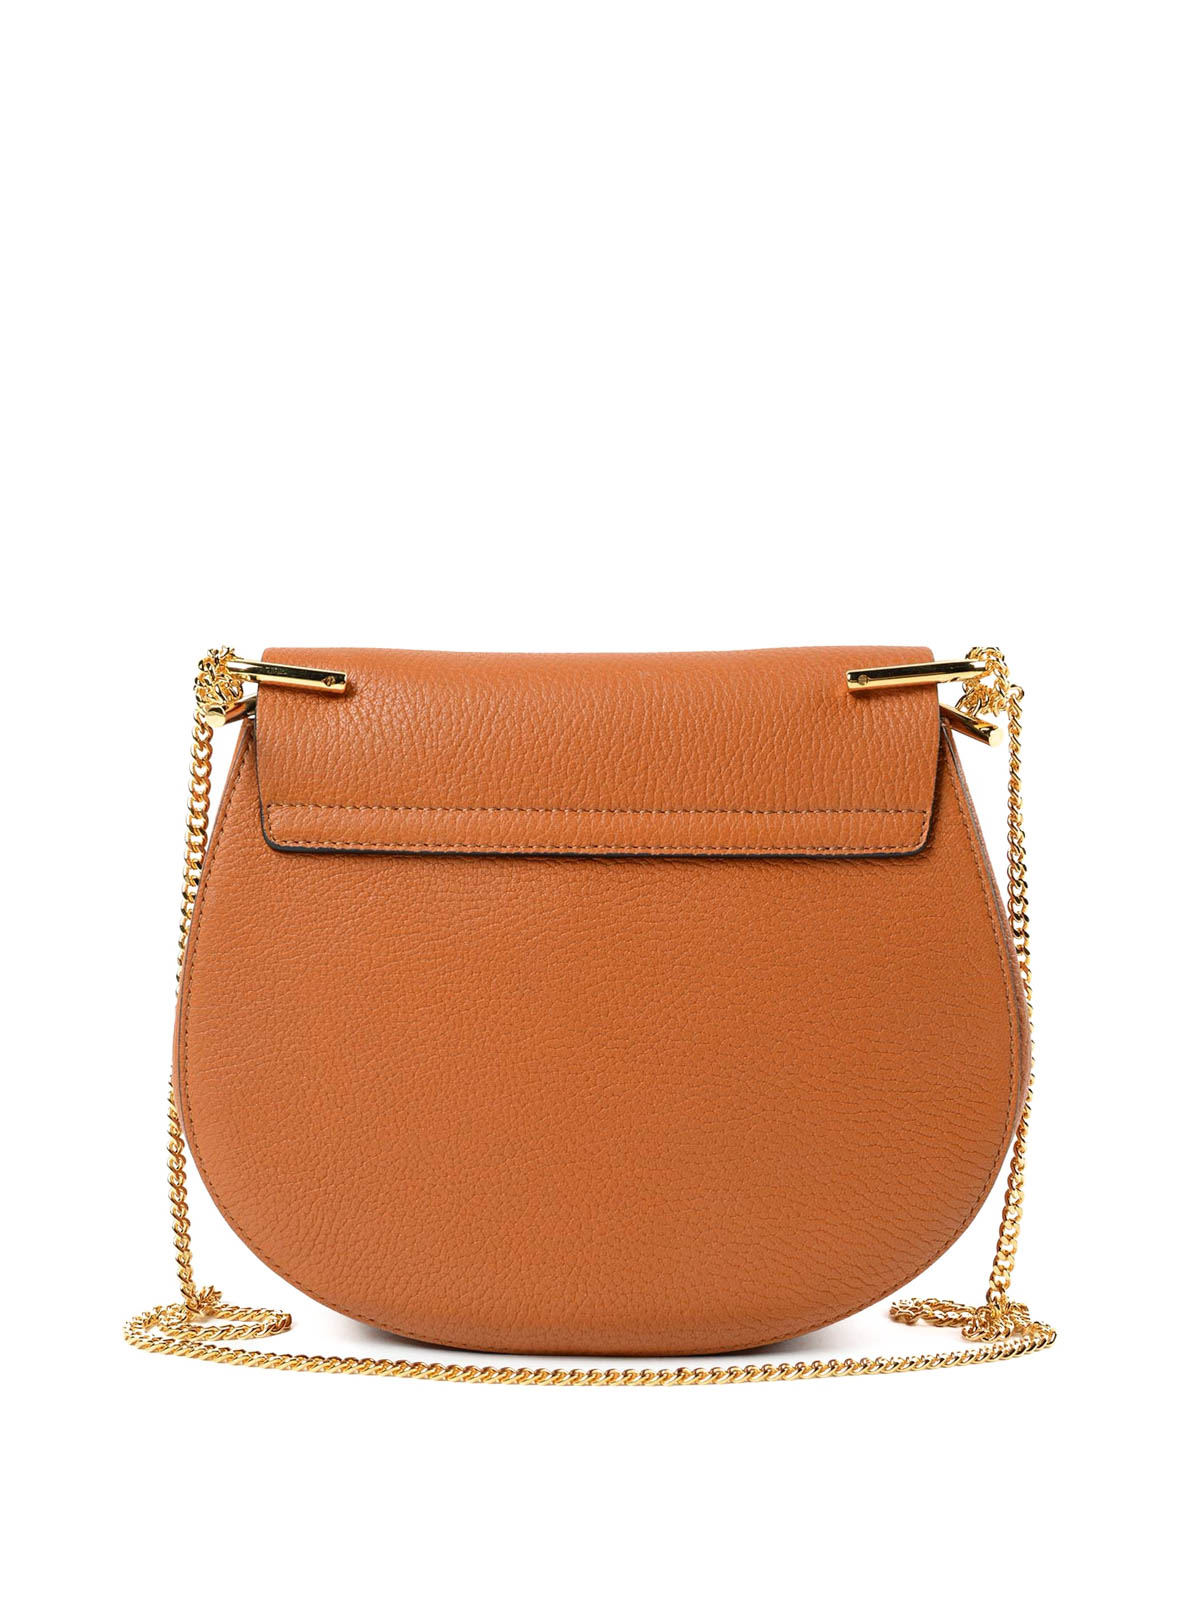 Chloe Drew Small Cross Body Bag Cross Body Bags